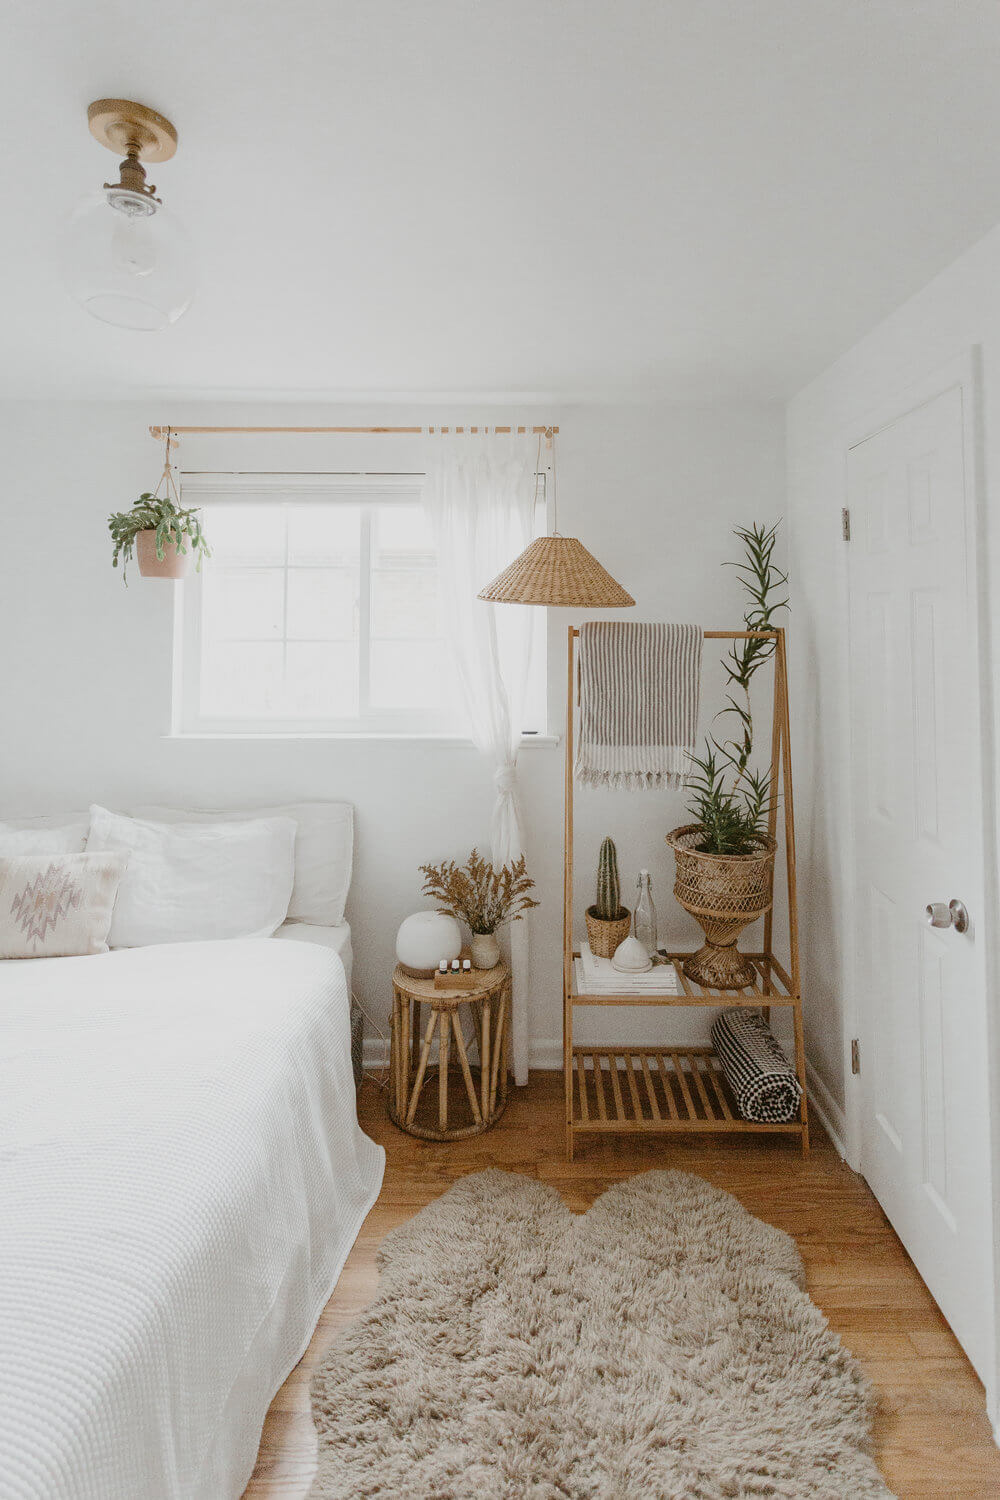 Clean White with Natural Fibers, Wood and Plants